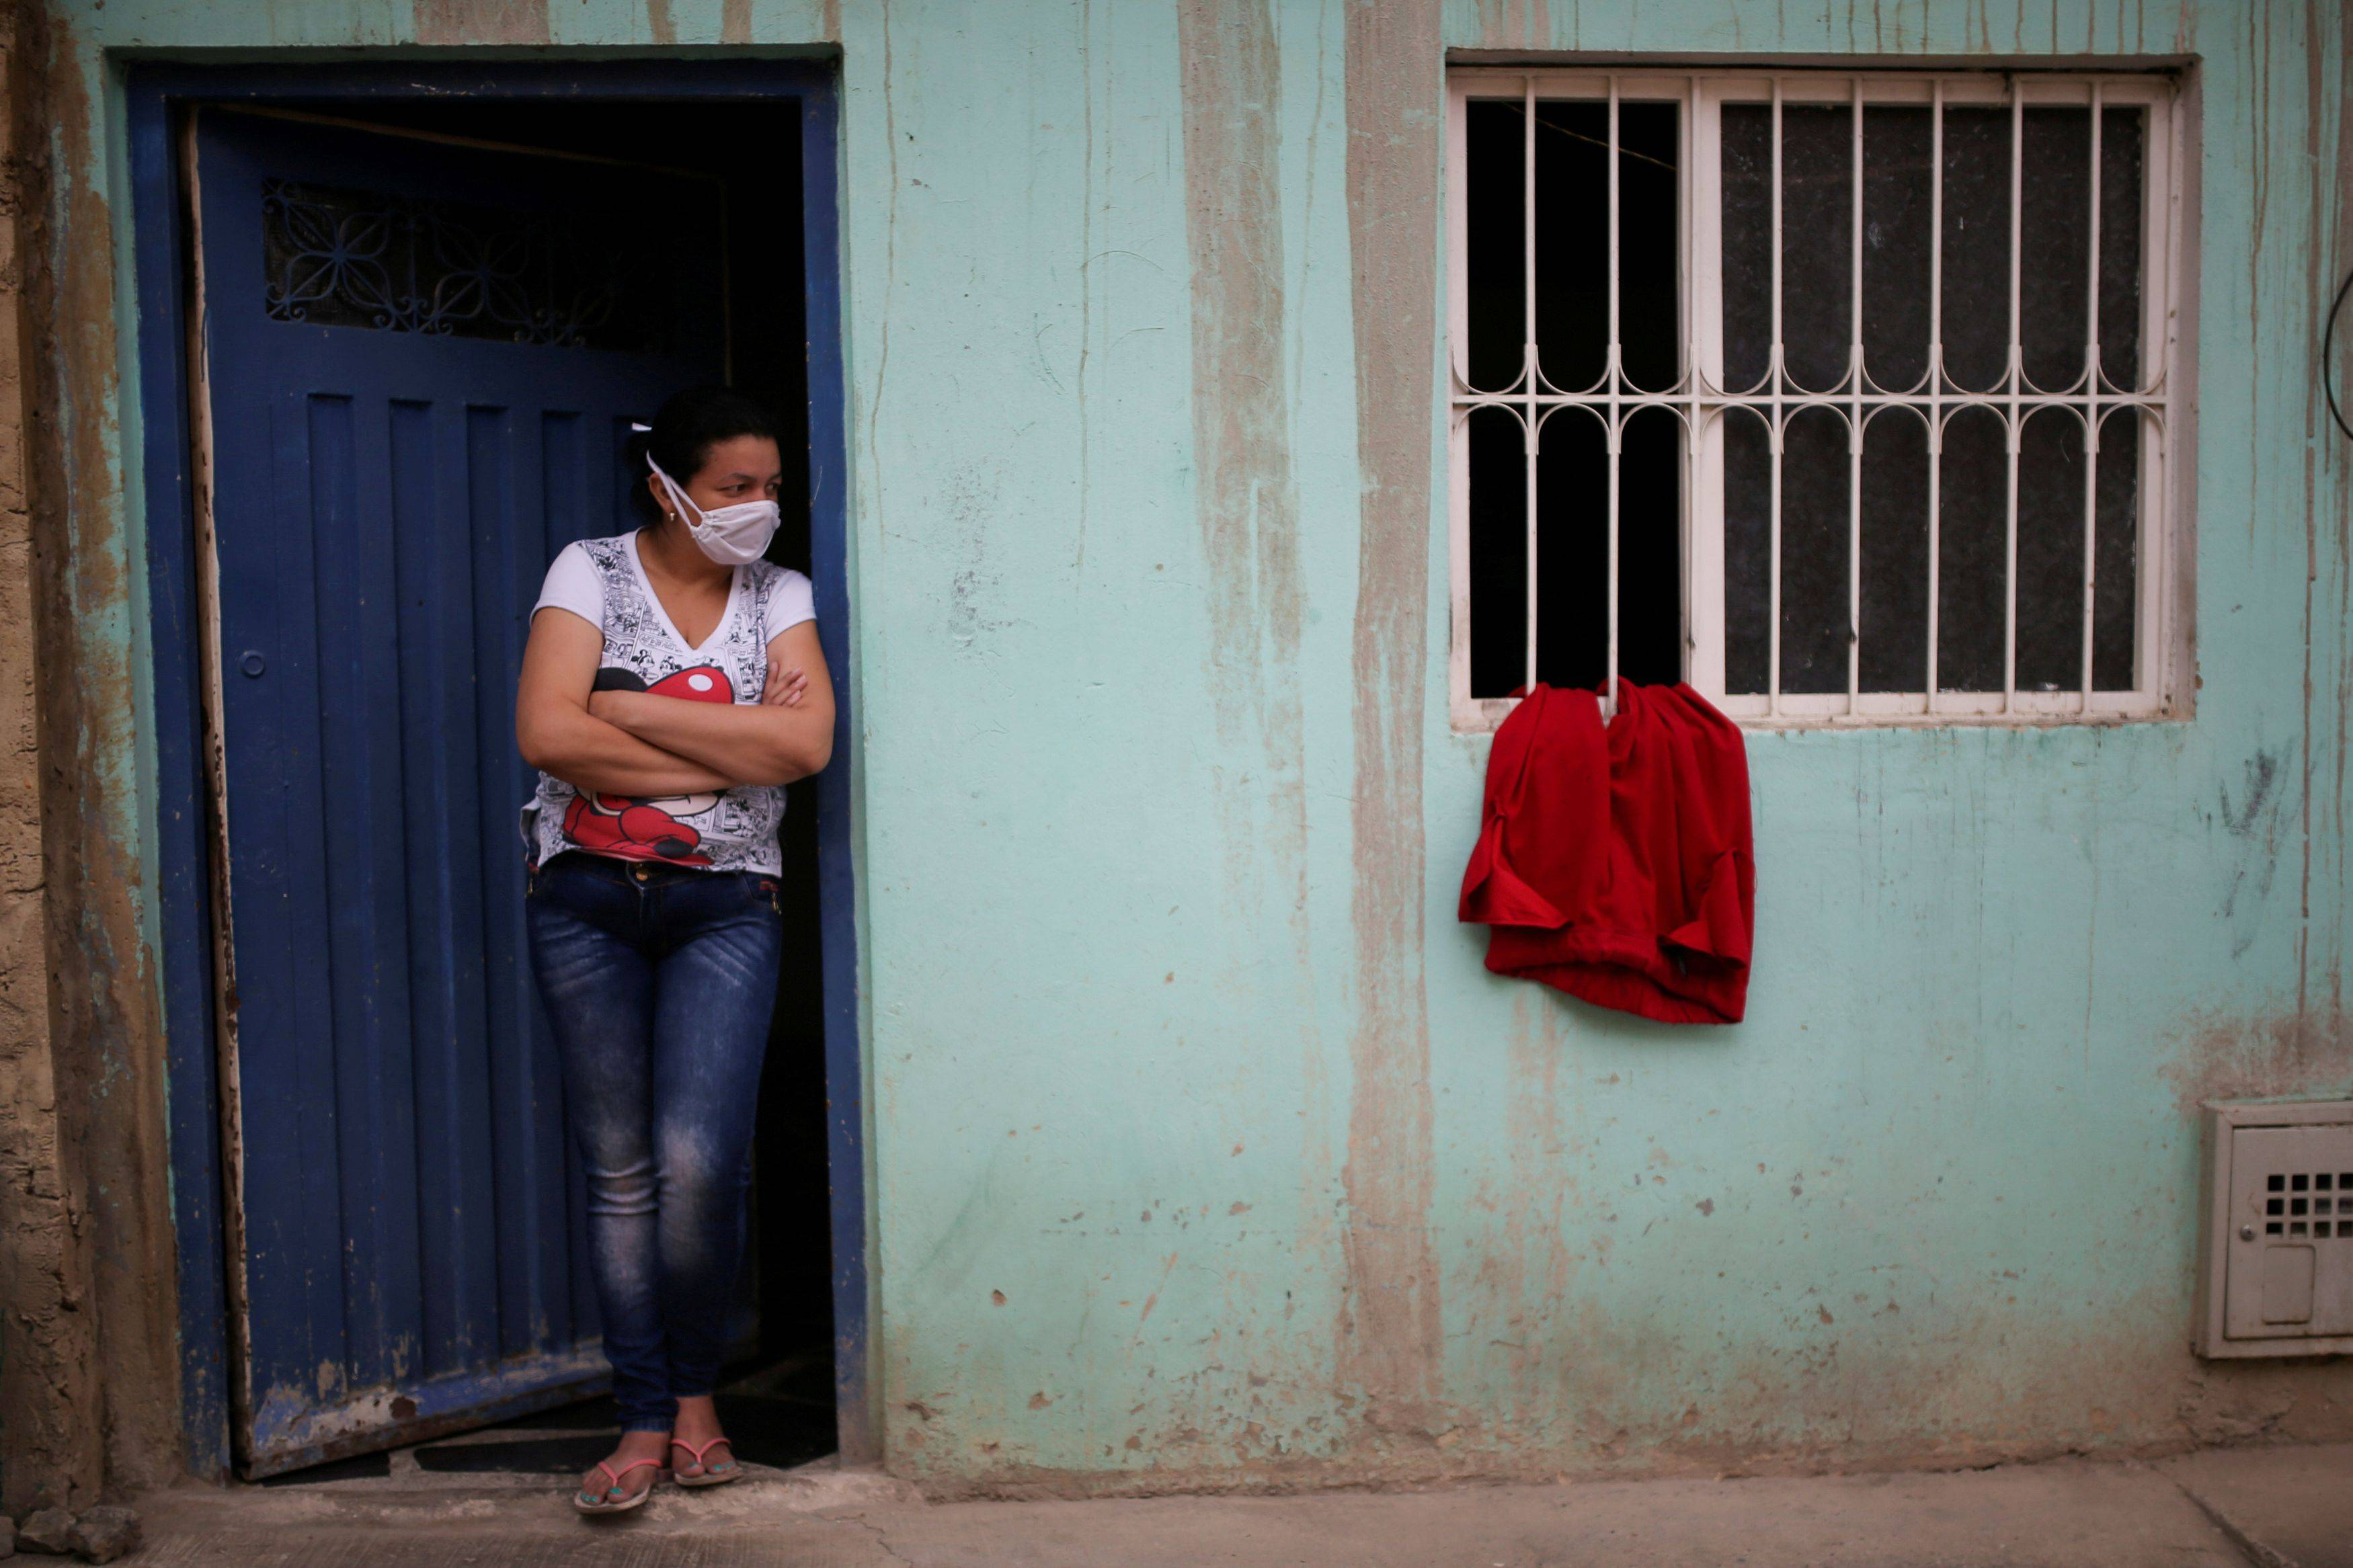 A red cloth hangs in a window April 21 at a home in Bogota, Colombia, where residents have been using them to signal that those in the home are in need of food and government assistance. (Luisa Gonzalez/Reuters)